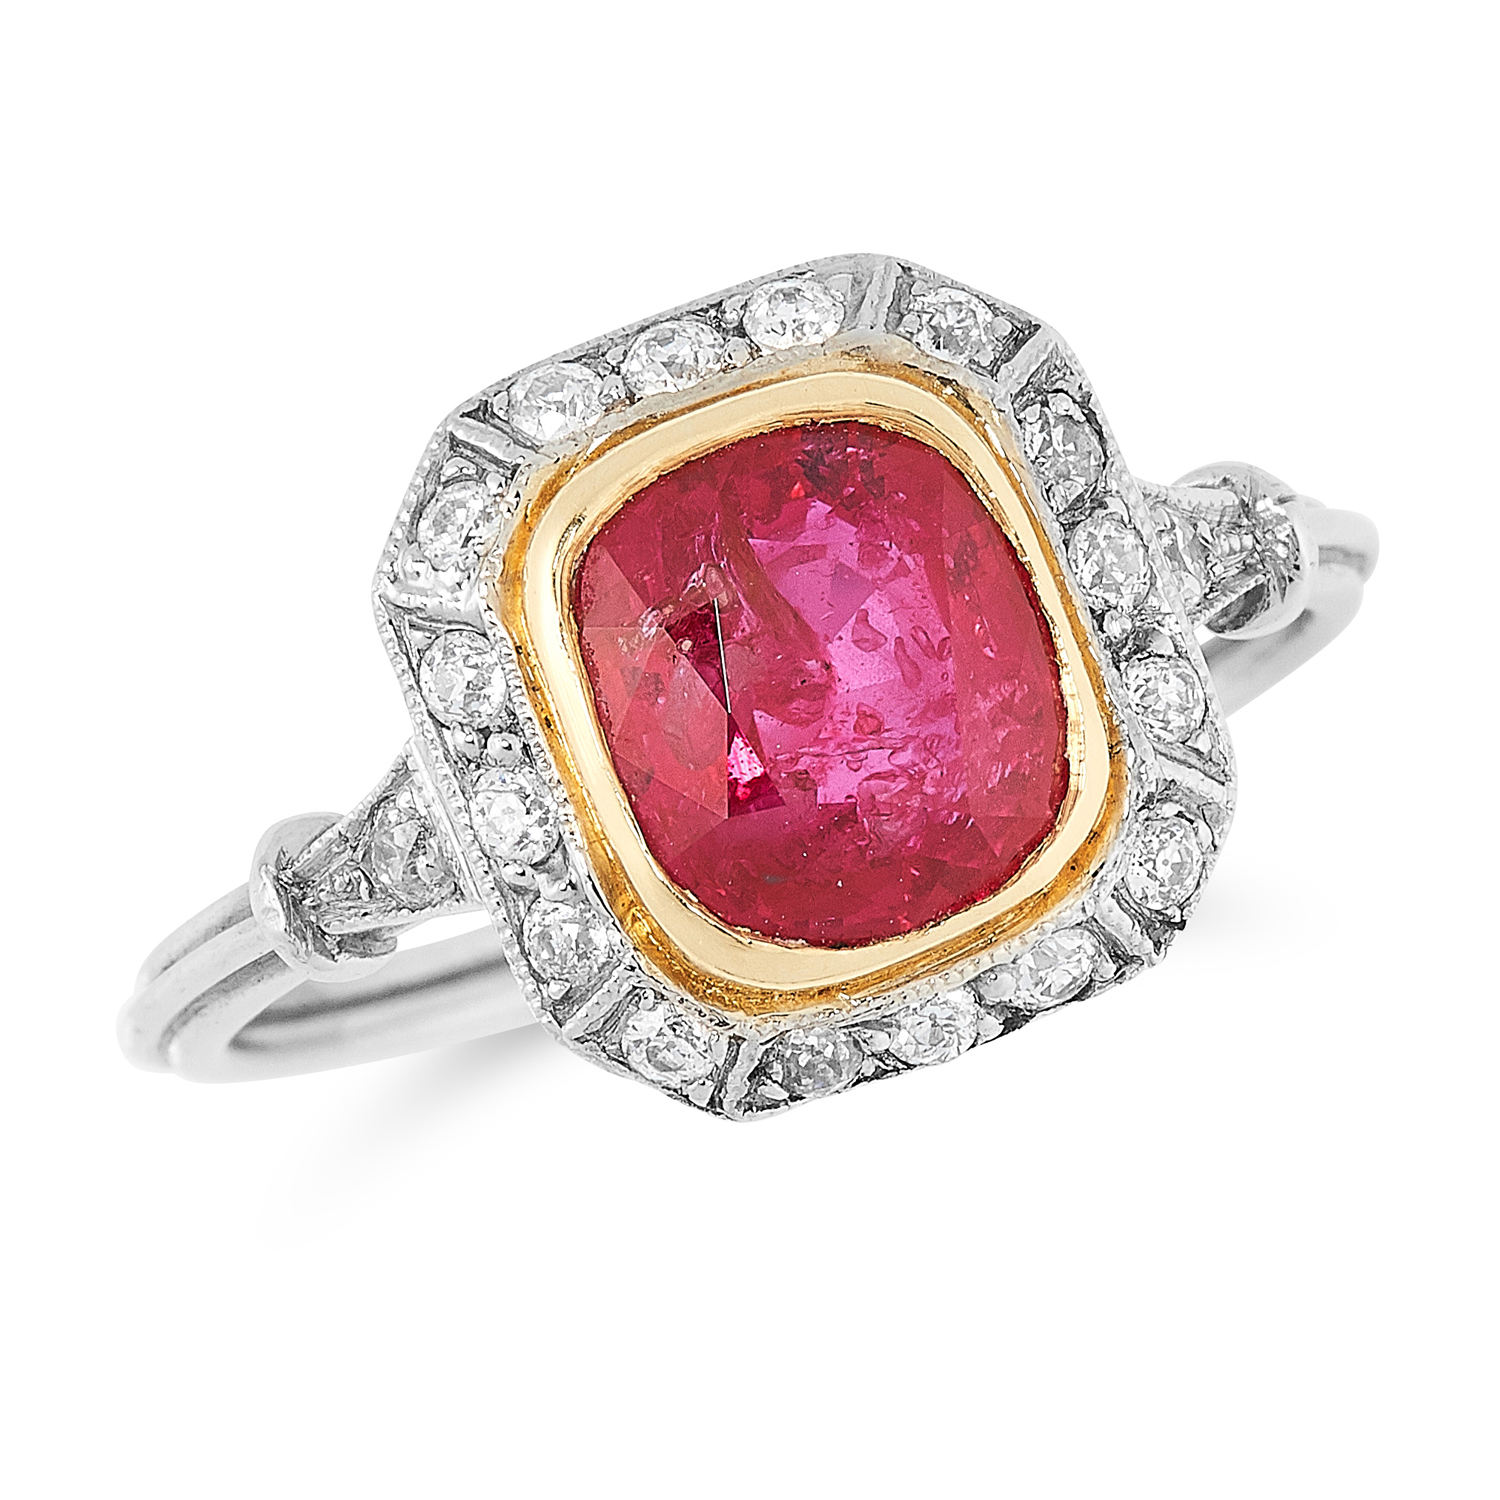 A 2.33 CARAT BURMA NO HEAT RUBY AND DIAMOND CLUSTER RING set with a cushion cut ruby of 2.33